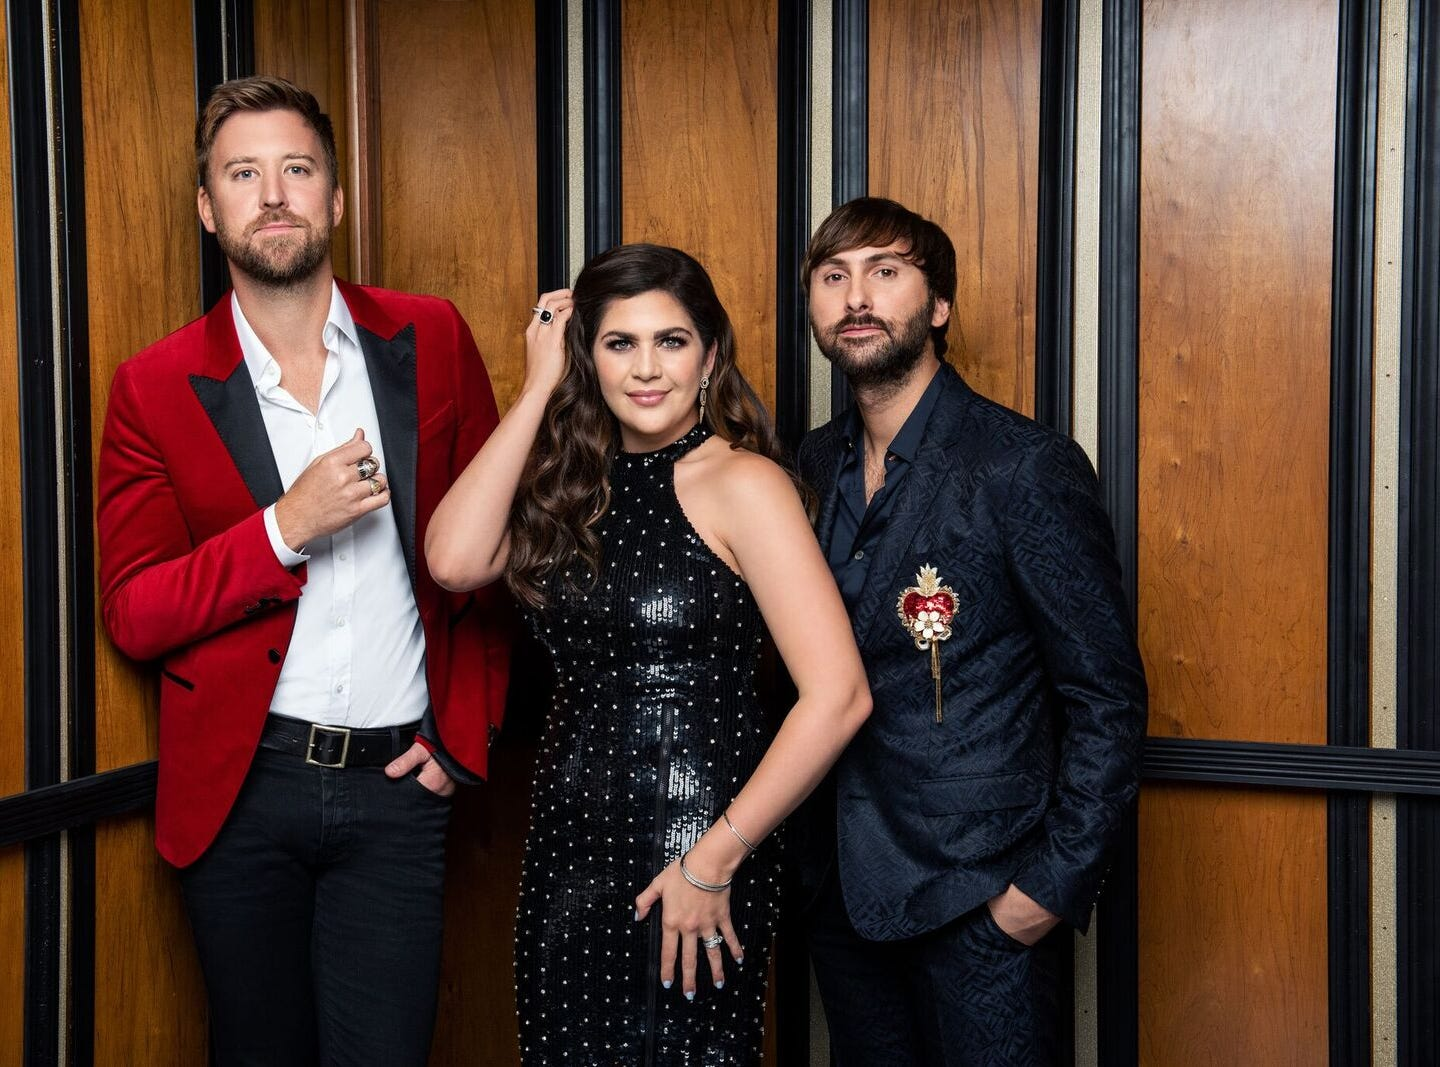 Country music trio Lady Antebellum begin a residency at the Palms Casino Resort in February 2019.